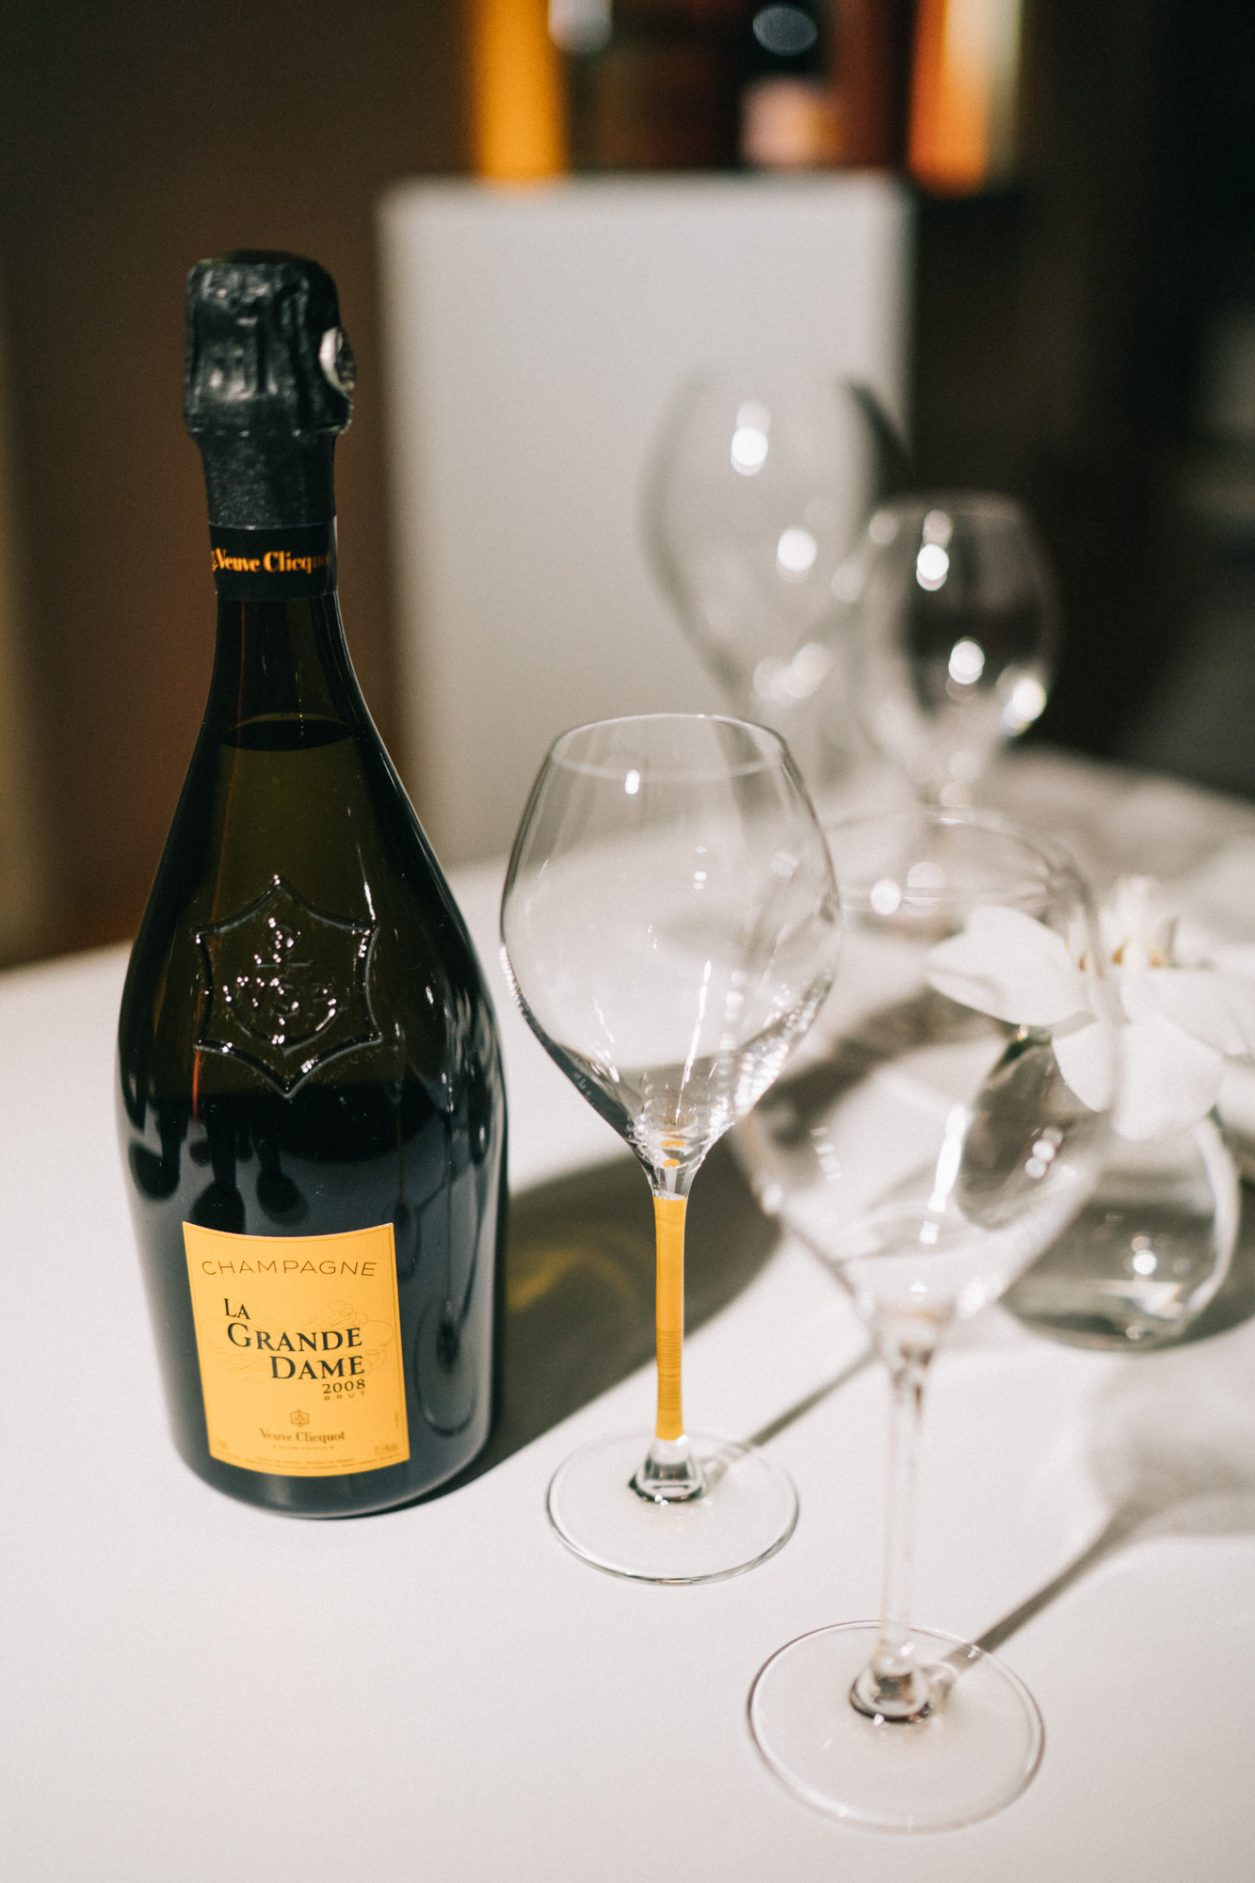 Veuve Clicquot Business Woman Award Germany 2019 | by Masha Sedgwick | Interview with Verena Pausdner | La Grande Dame 2008 Champagne